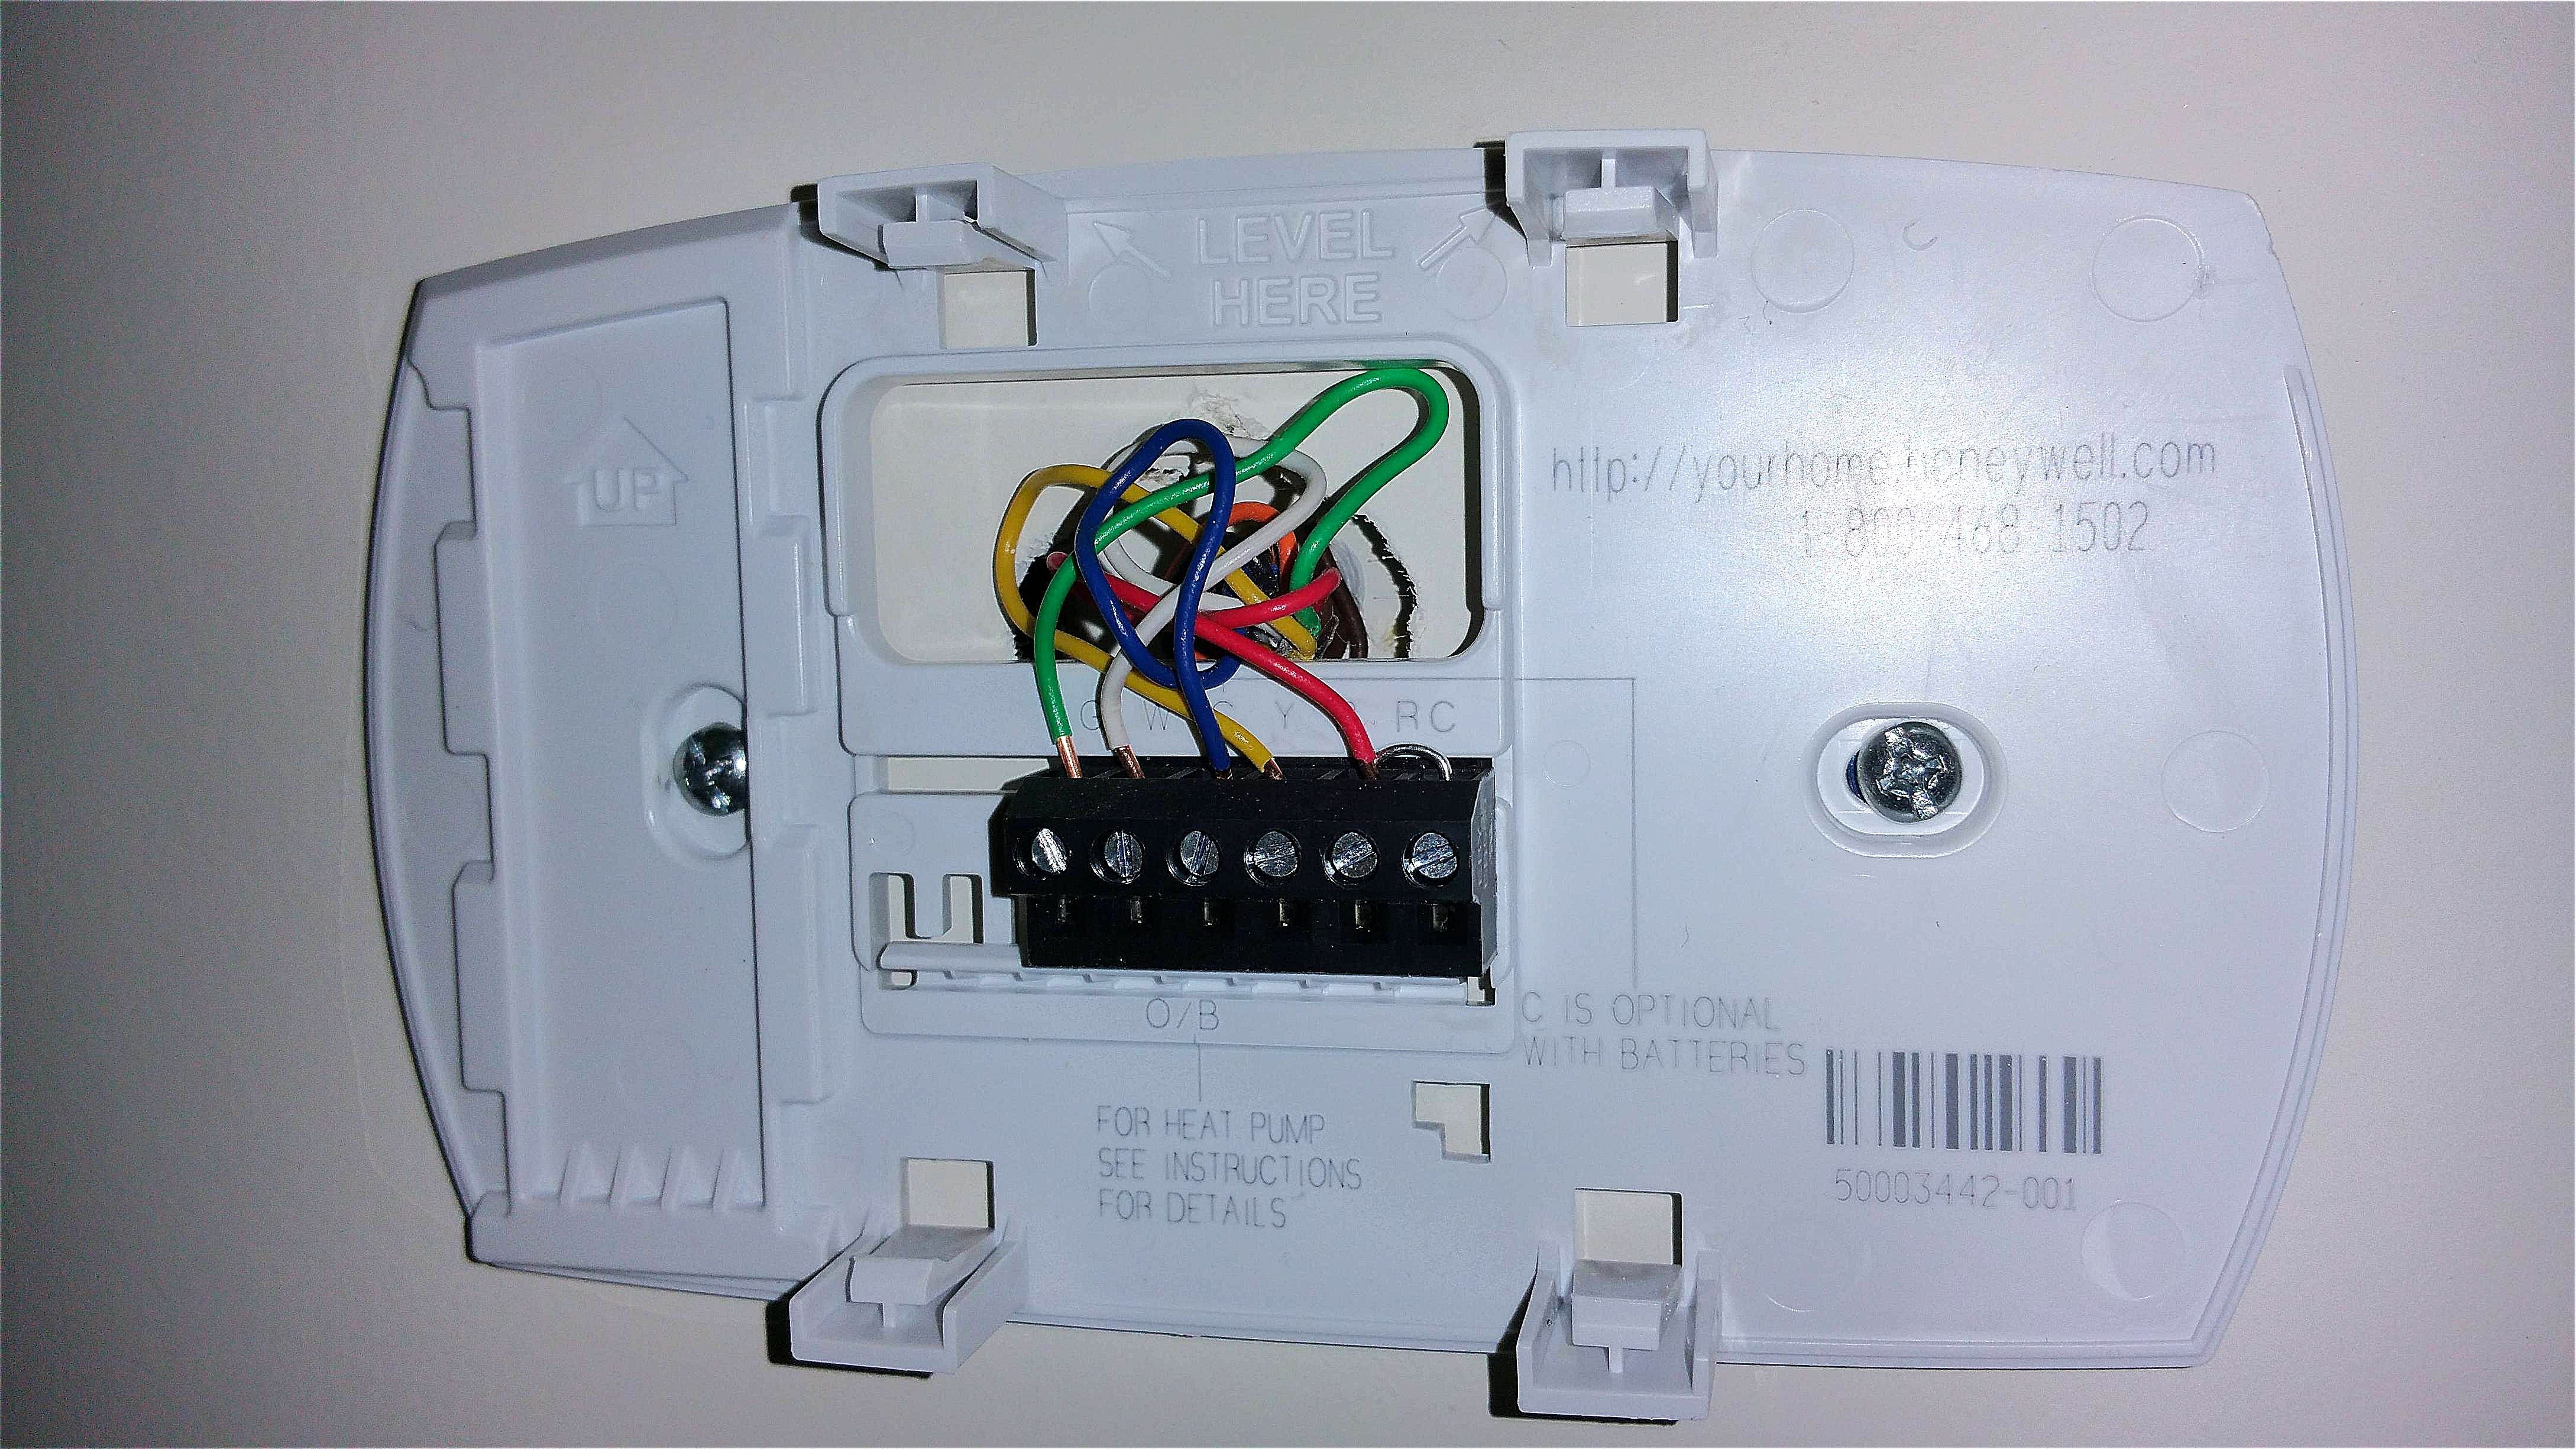 Honeywell Heat Pump Thermostat Wiring Diagram Thoritsolutions